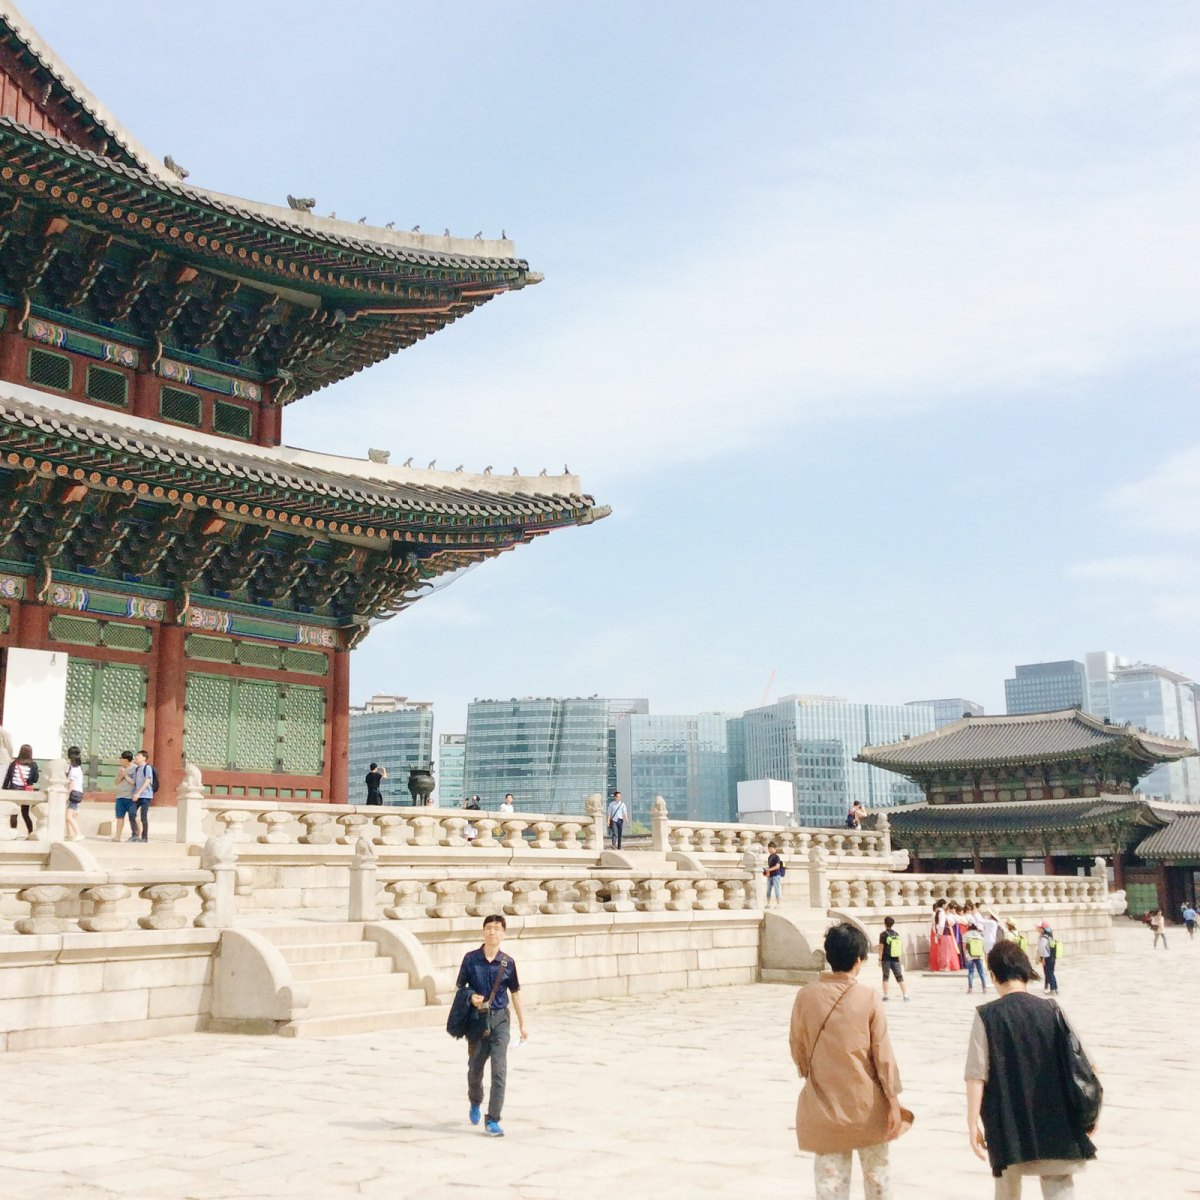 The throne hall of Gyeongbokgung Palace with the modern buildings in the background